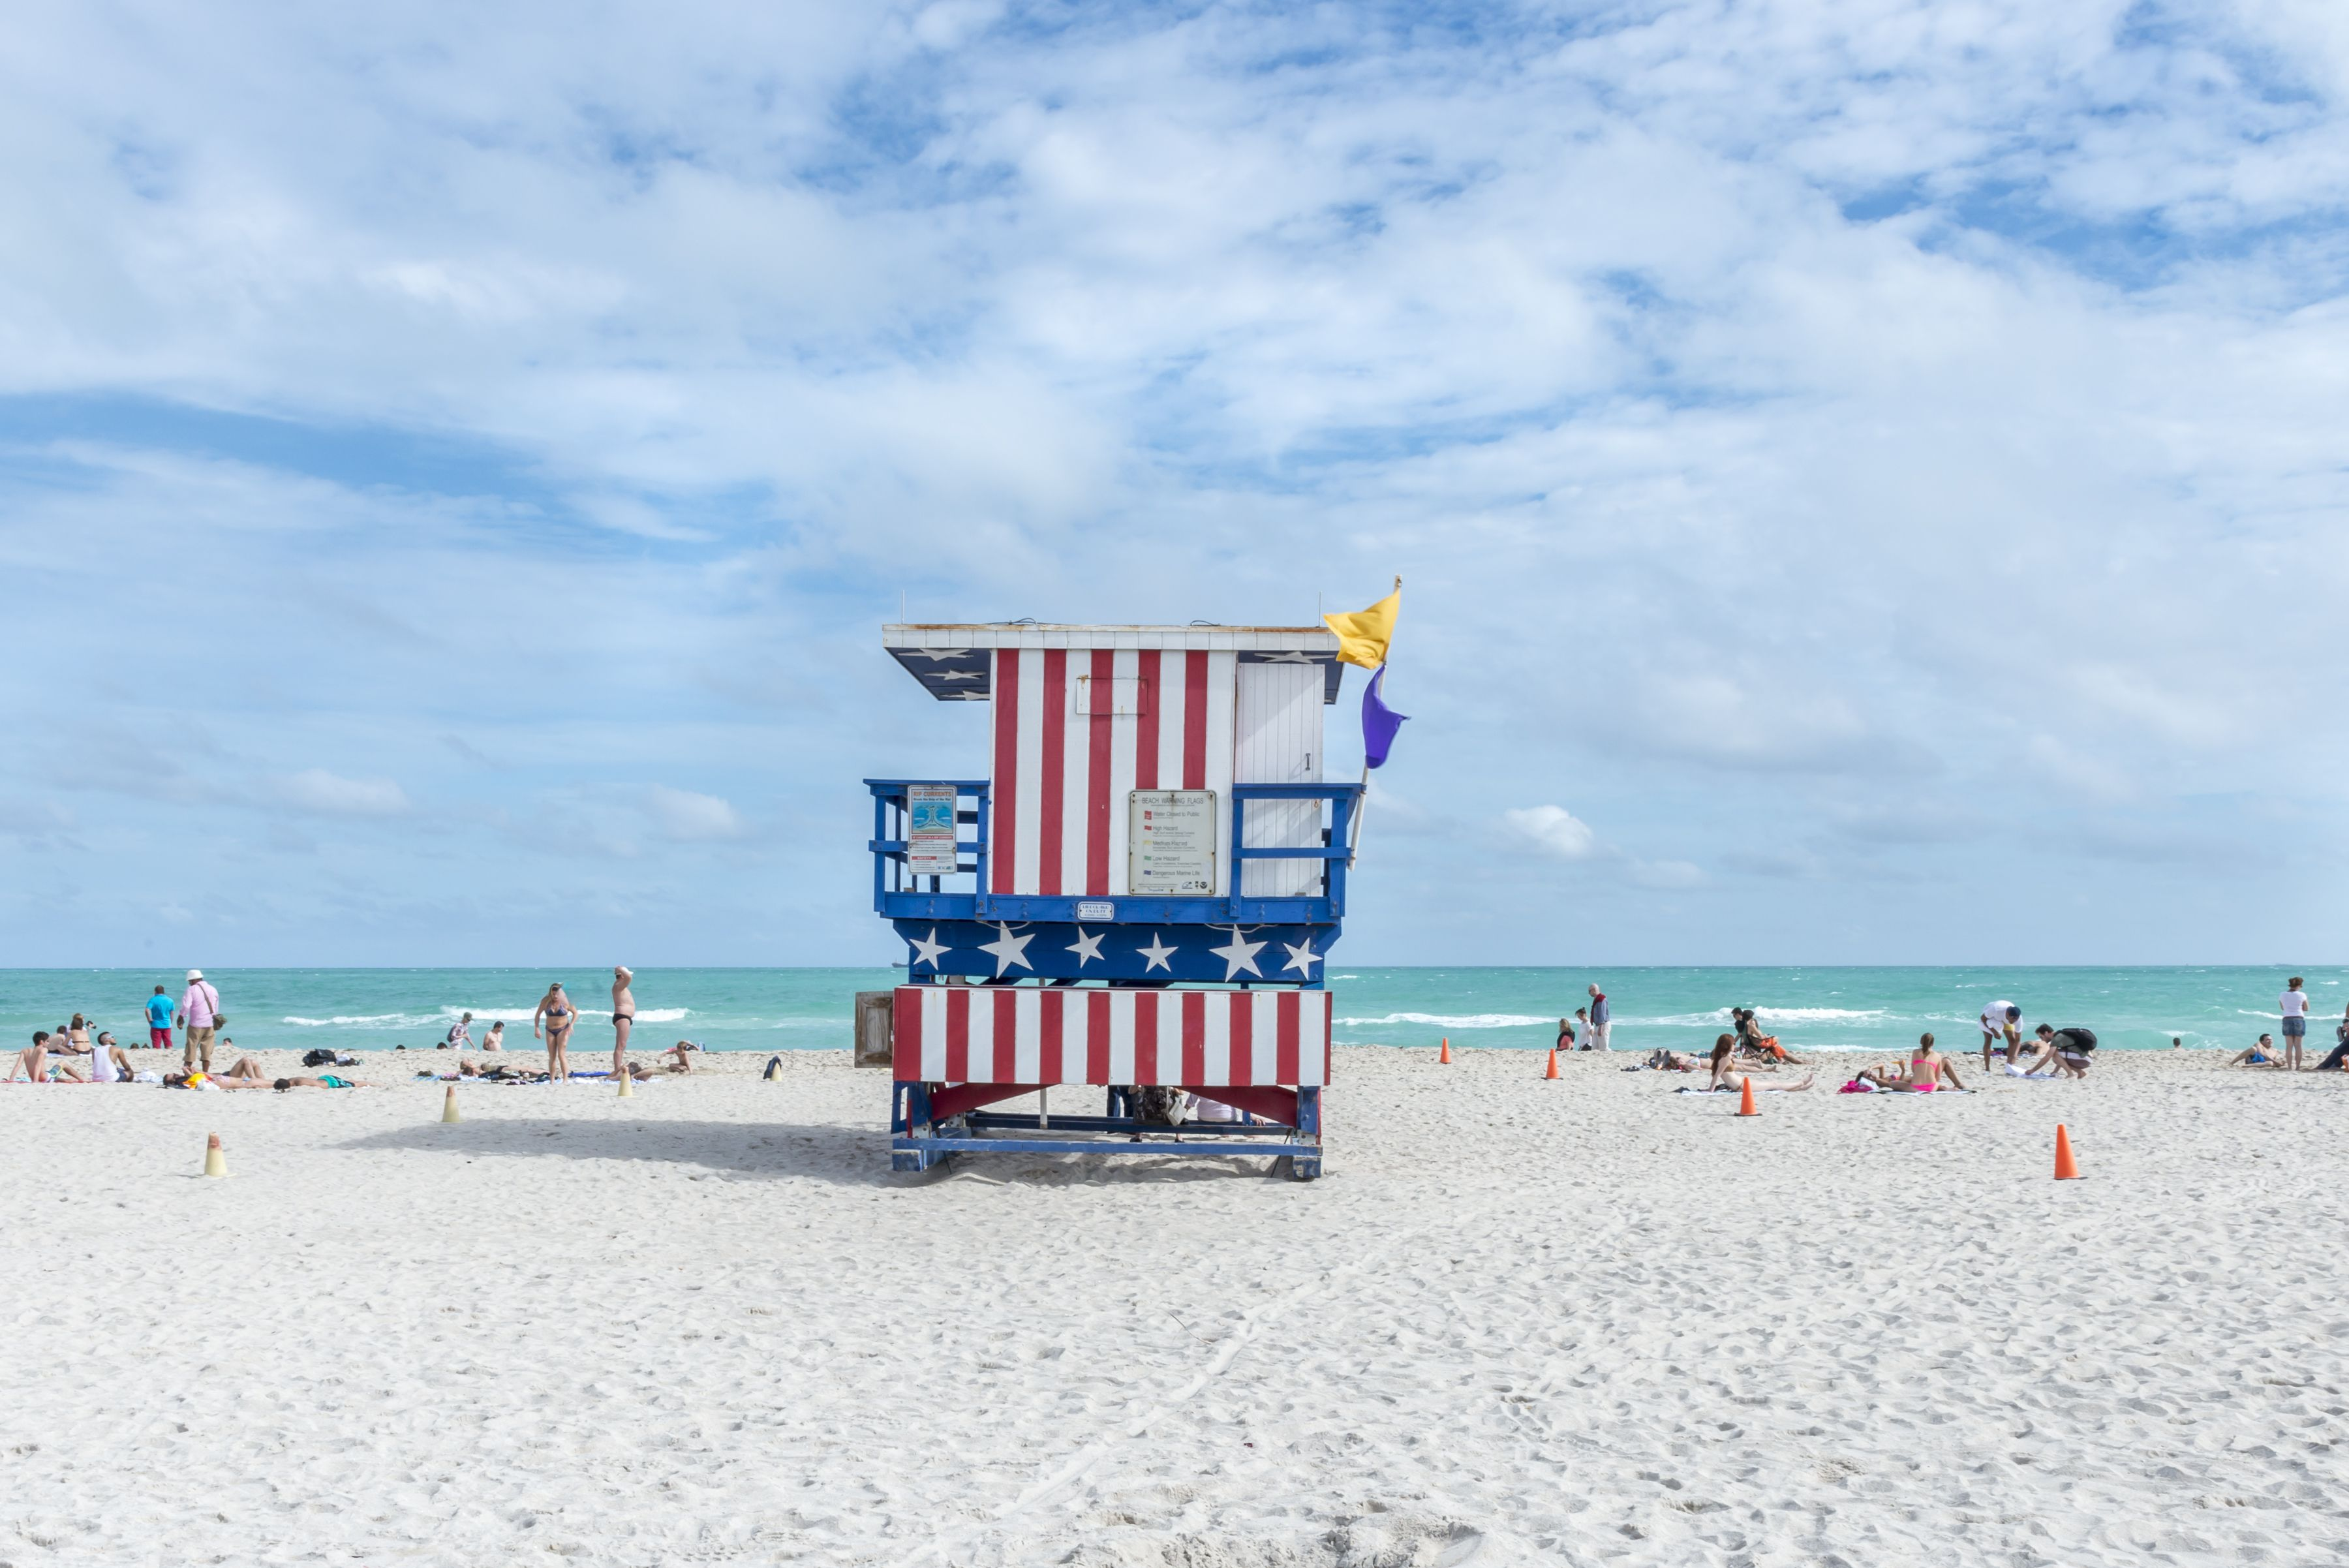 """South Beach Lifeguard Chairs"" Series in South Beach, Miami, Florida. Stars and Stripes. http://www.richardsilverphoto.com/Portfolios/South-Beach-Lifeguard-Chairs"